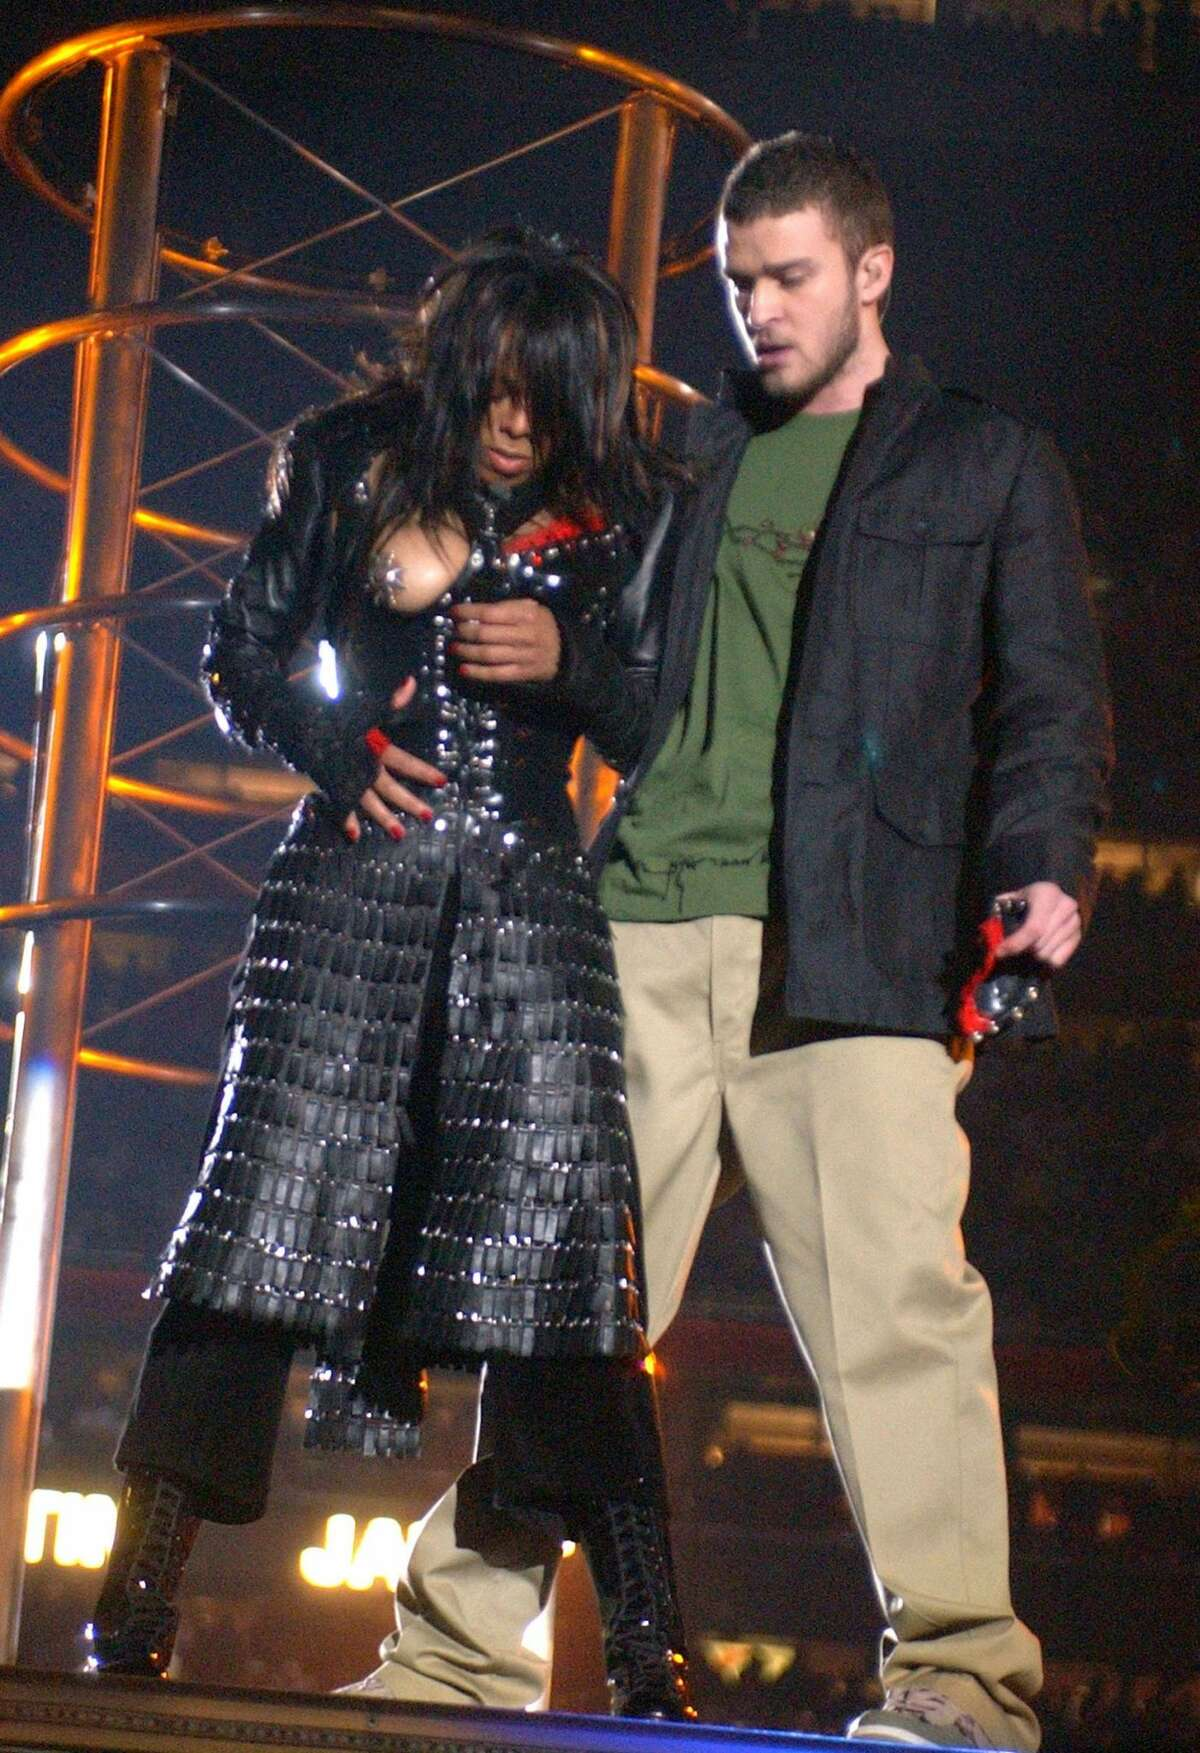 Janet Jackson and Justin Timberlake at the 2004 Super Bowl The infamous half-time moment-which left Janet exposed-sparked a huge controversy, as many people were torn over whether or not the incident was accidental or intentional.